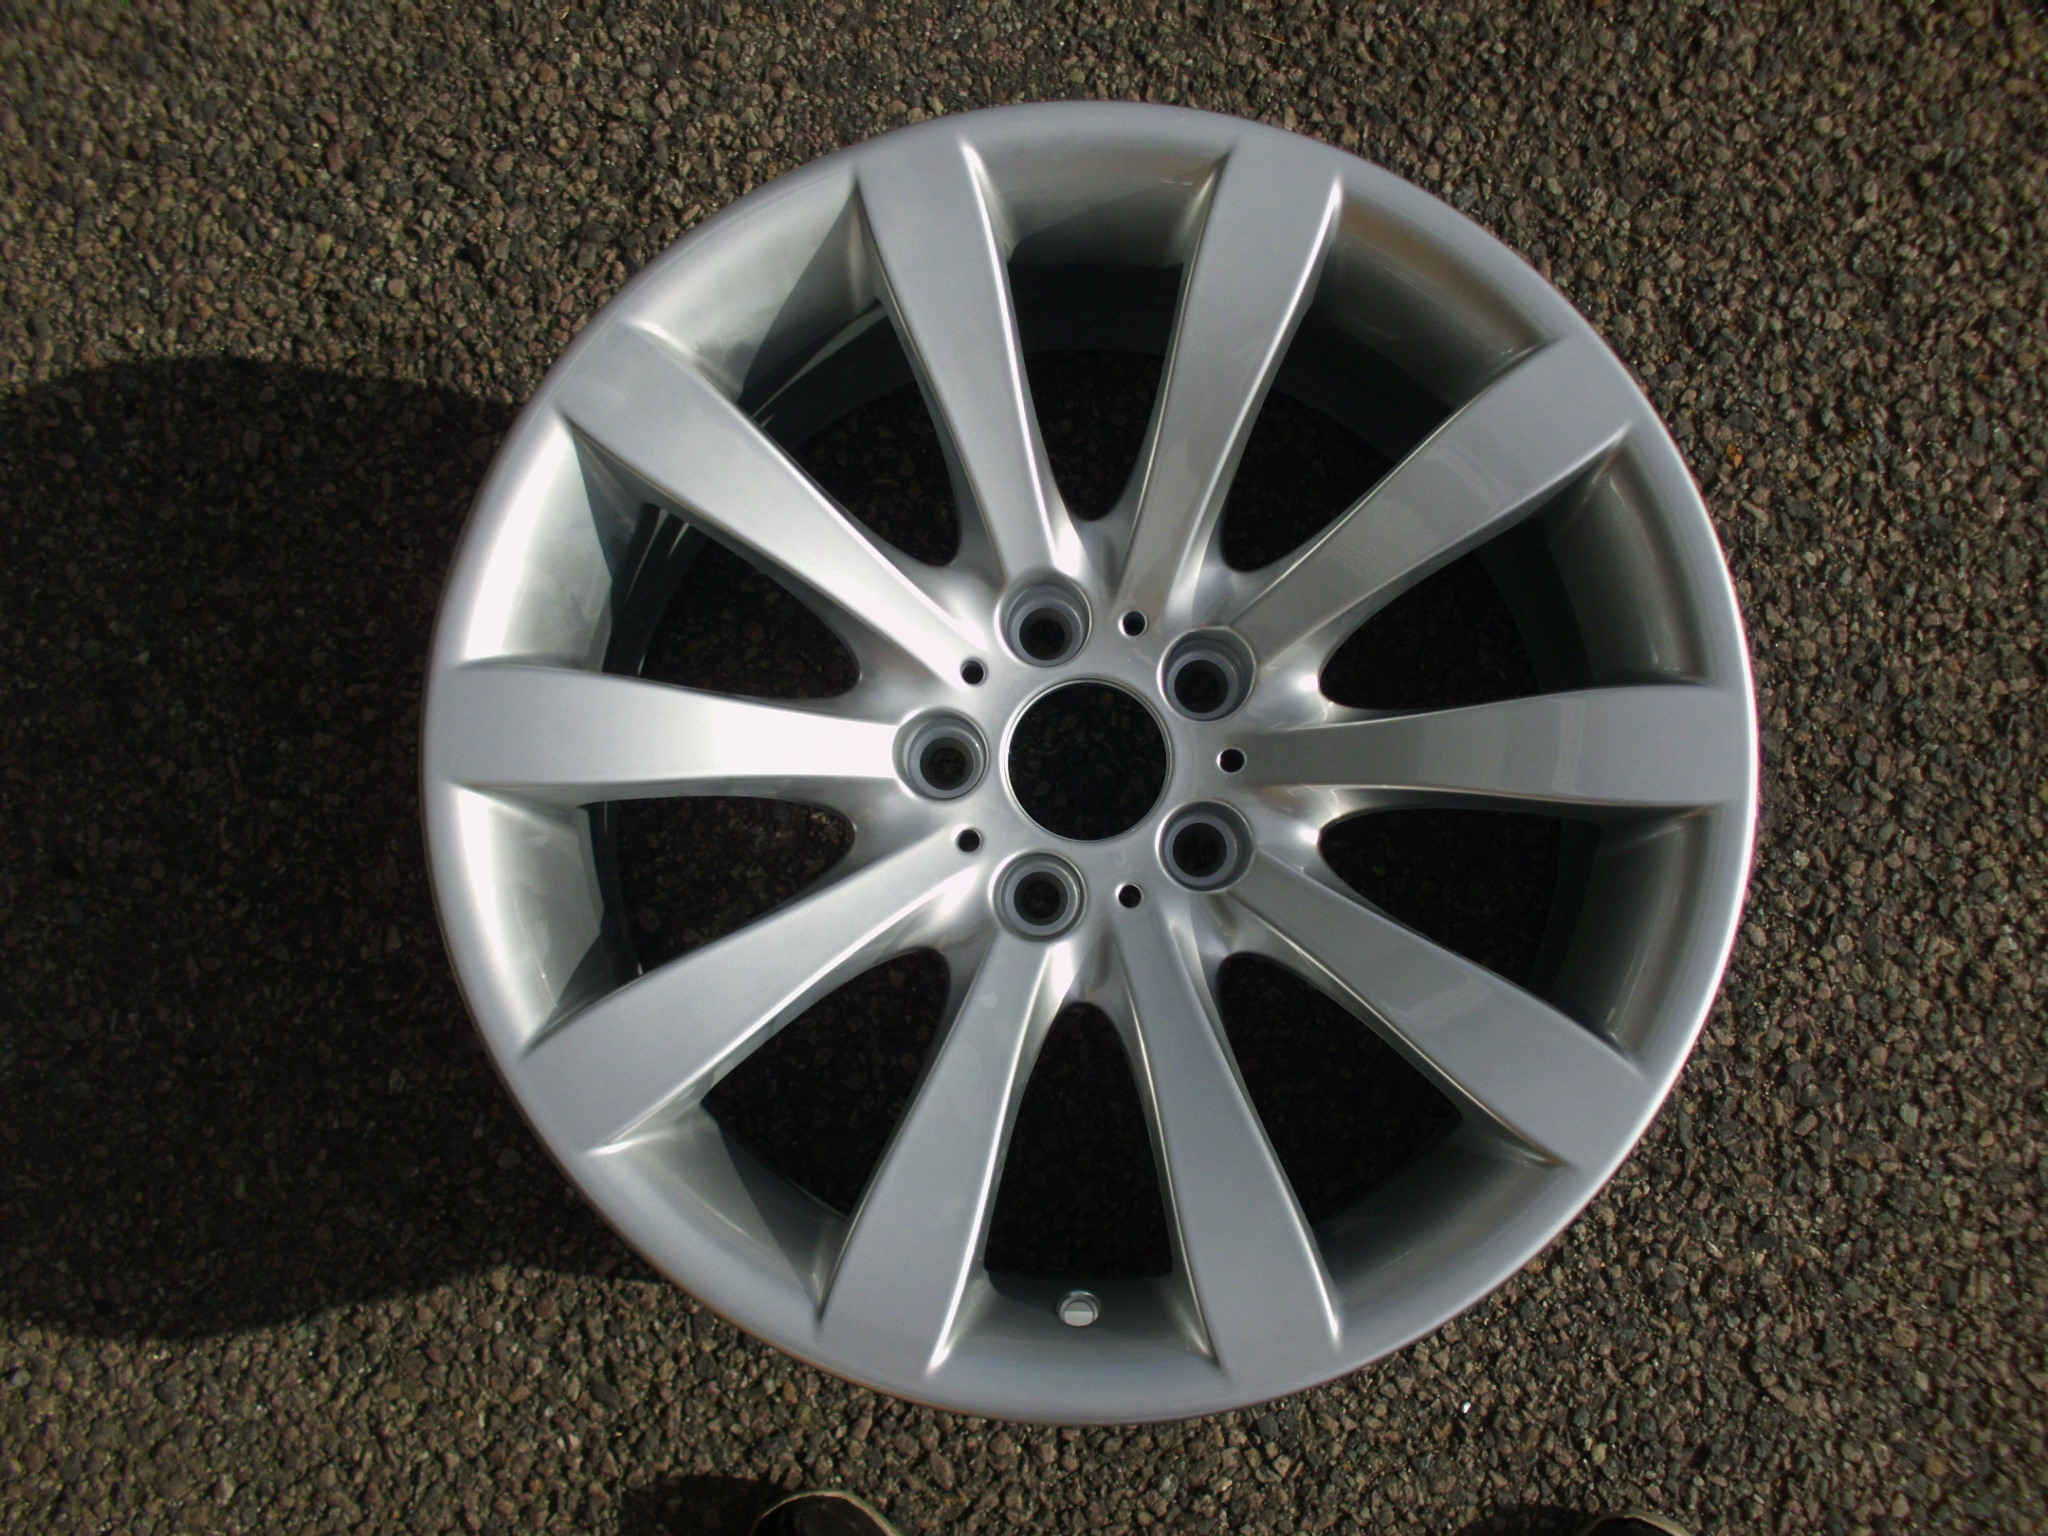 "USED SINGLE 19"" GENUINE BMW E63 6 SERIES STYLE 218 REAR ALLOY WHEEL, FULLY REFURBISHED IN ORIGINAL FINISH"